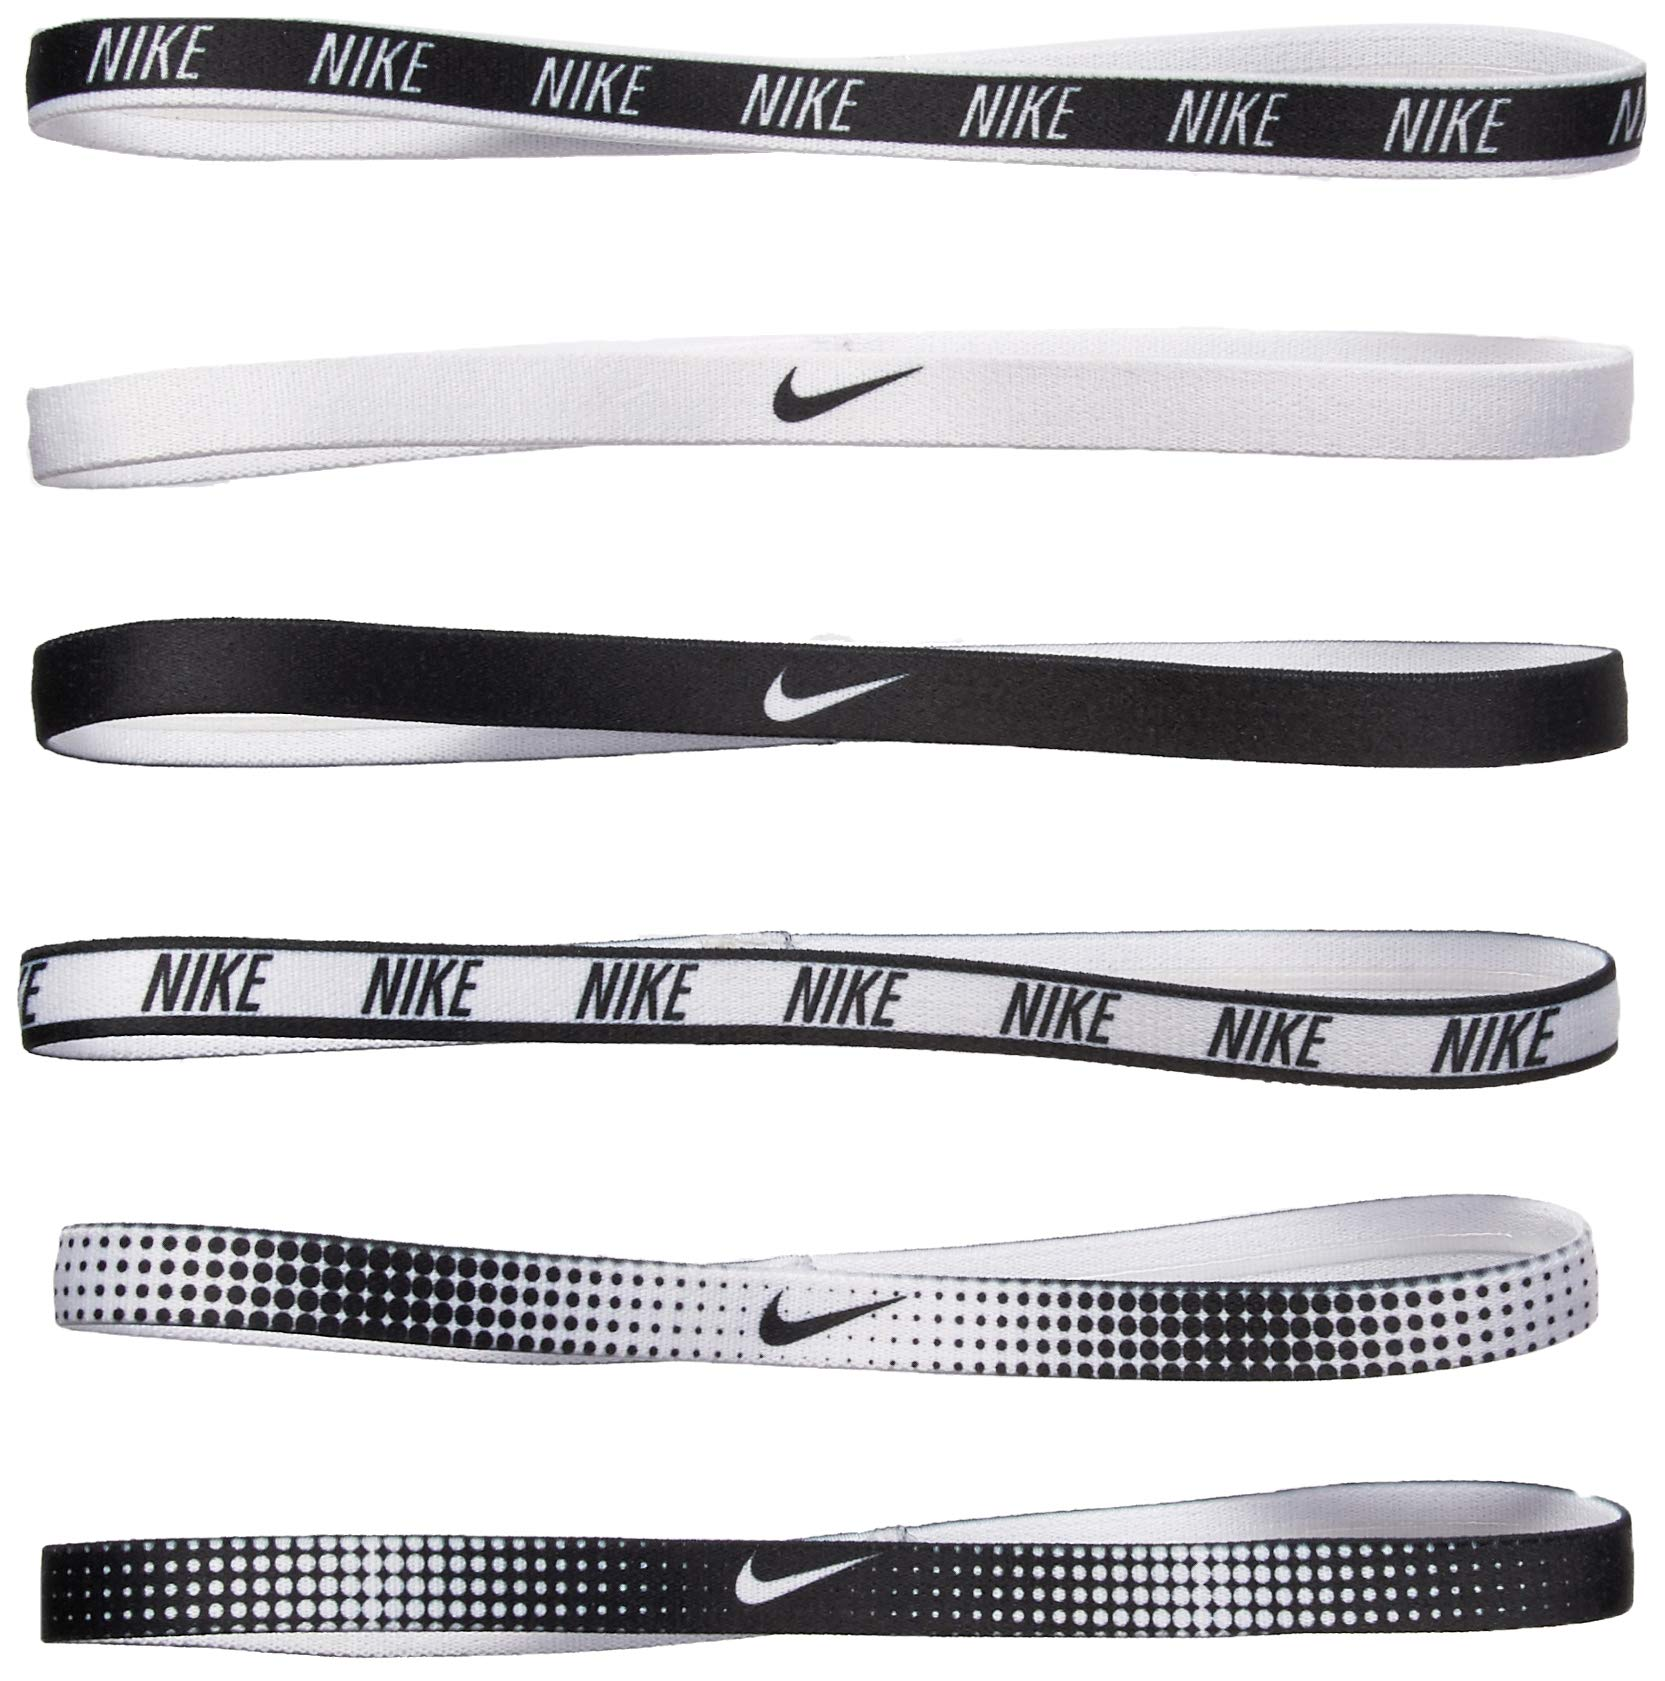 Nike Women's Printed Headbands Assorted 6PK White/Black Size One Size by Nike